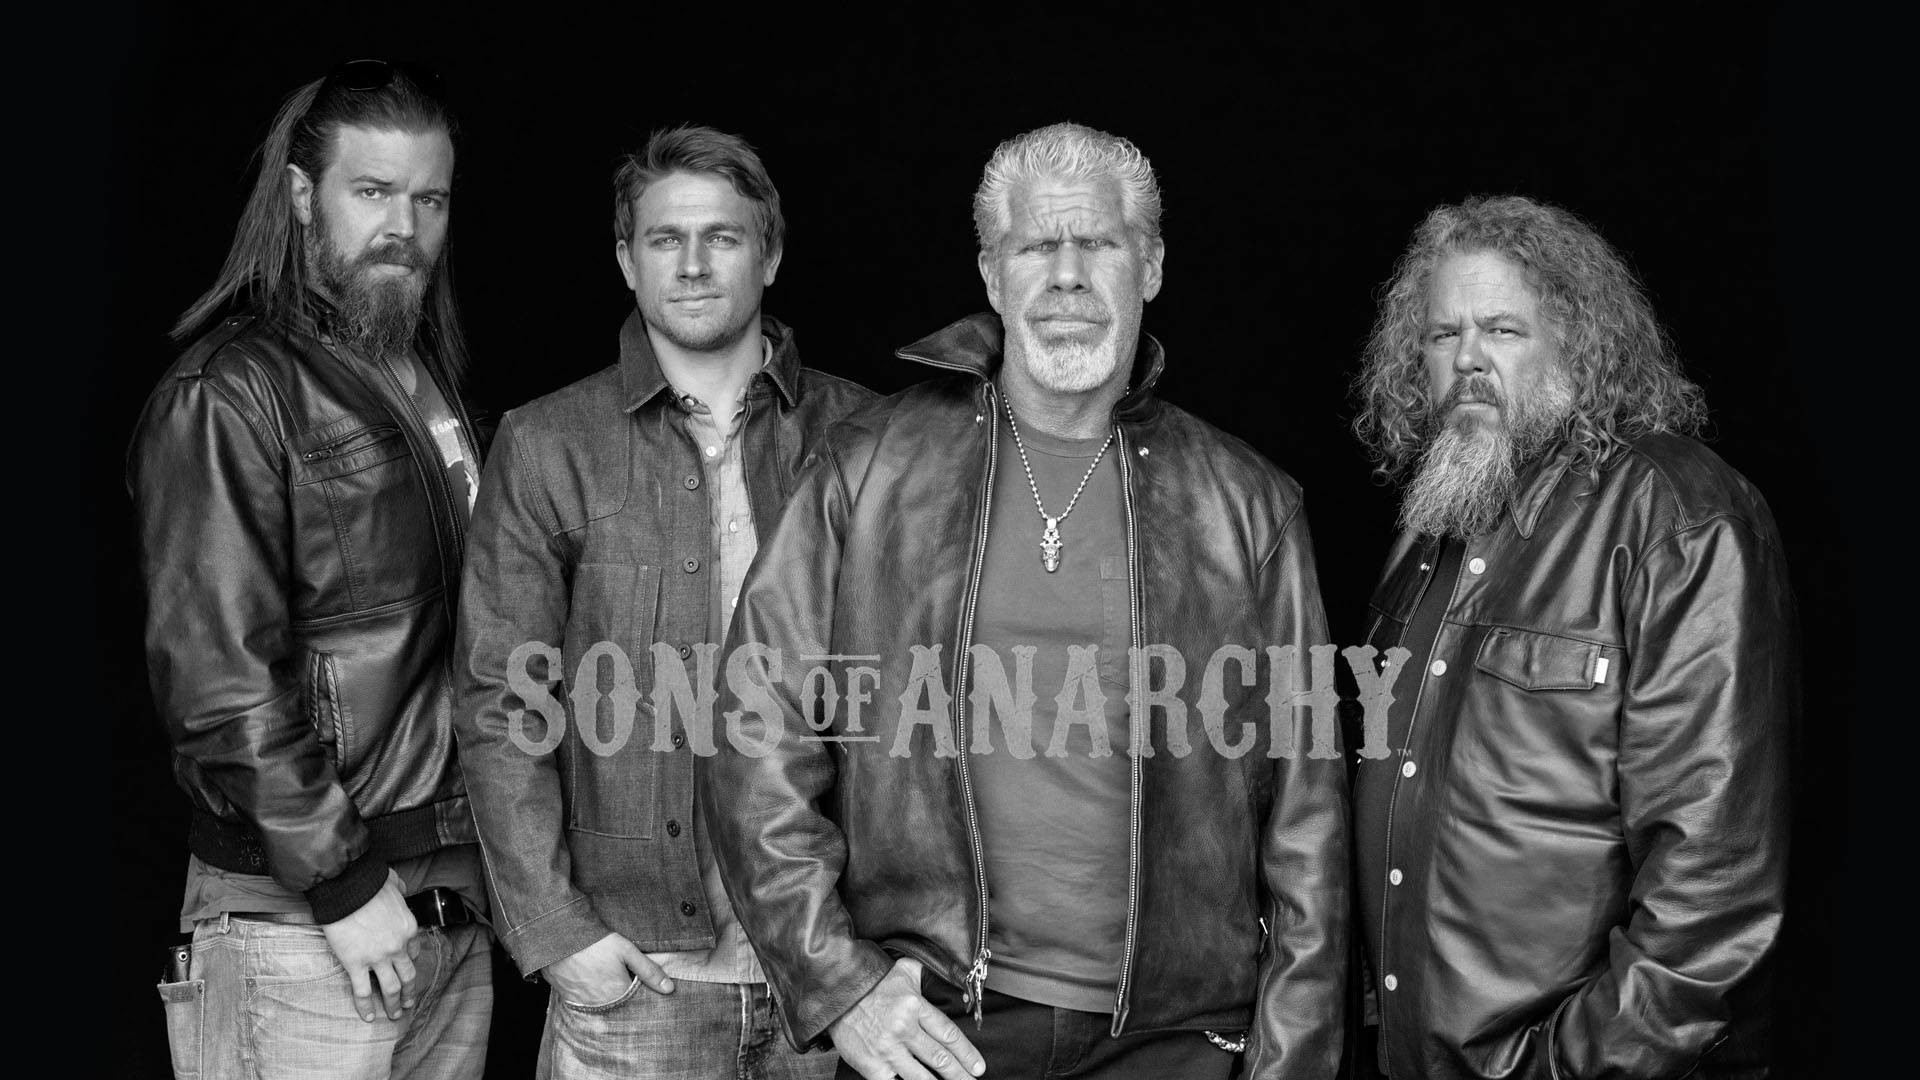 Sons Of Anarchy Wallpaper IPhone (70+ Images